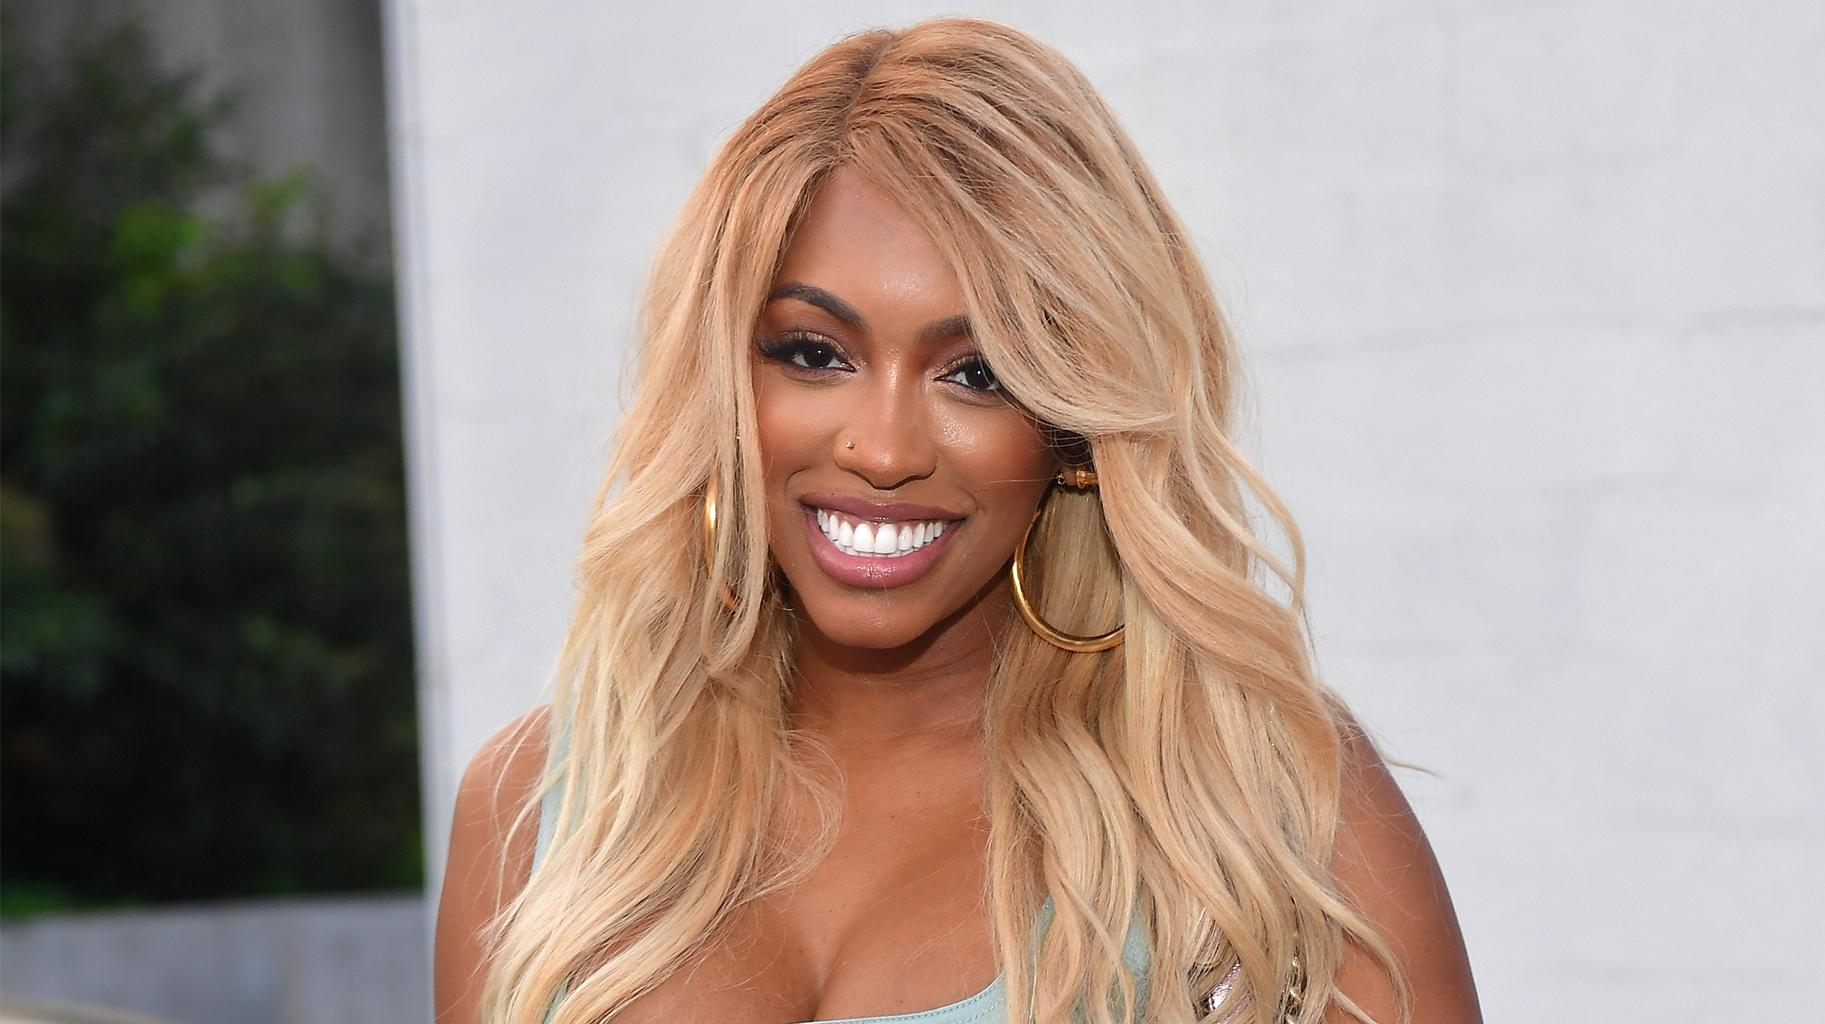 Porsha Williams Makes Fans Laugh With This Hilarious Video